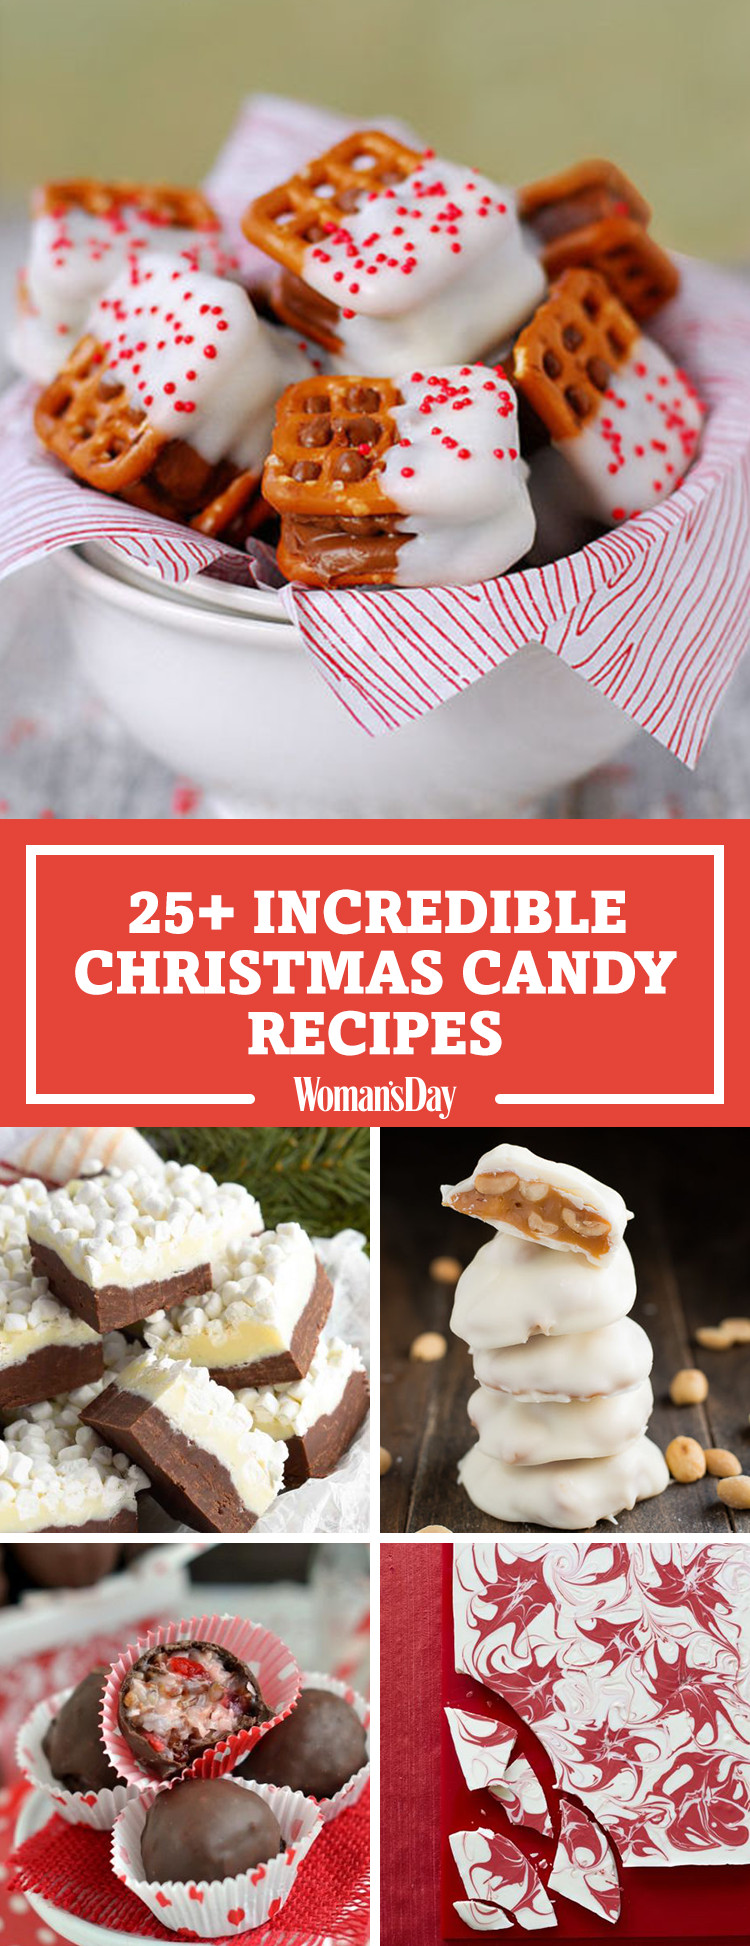 Christmas Candy Recipe  28 Homemade Christmas Candy Recipes How To Make Your Own